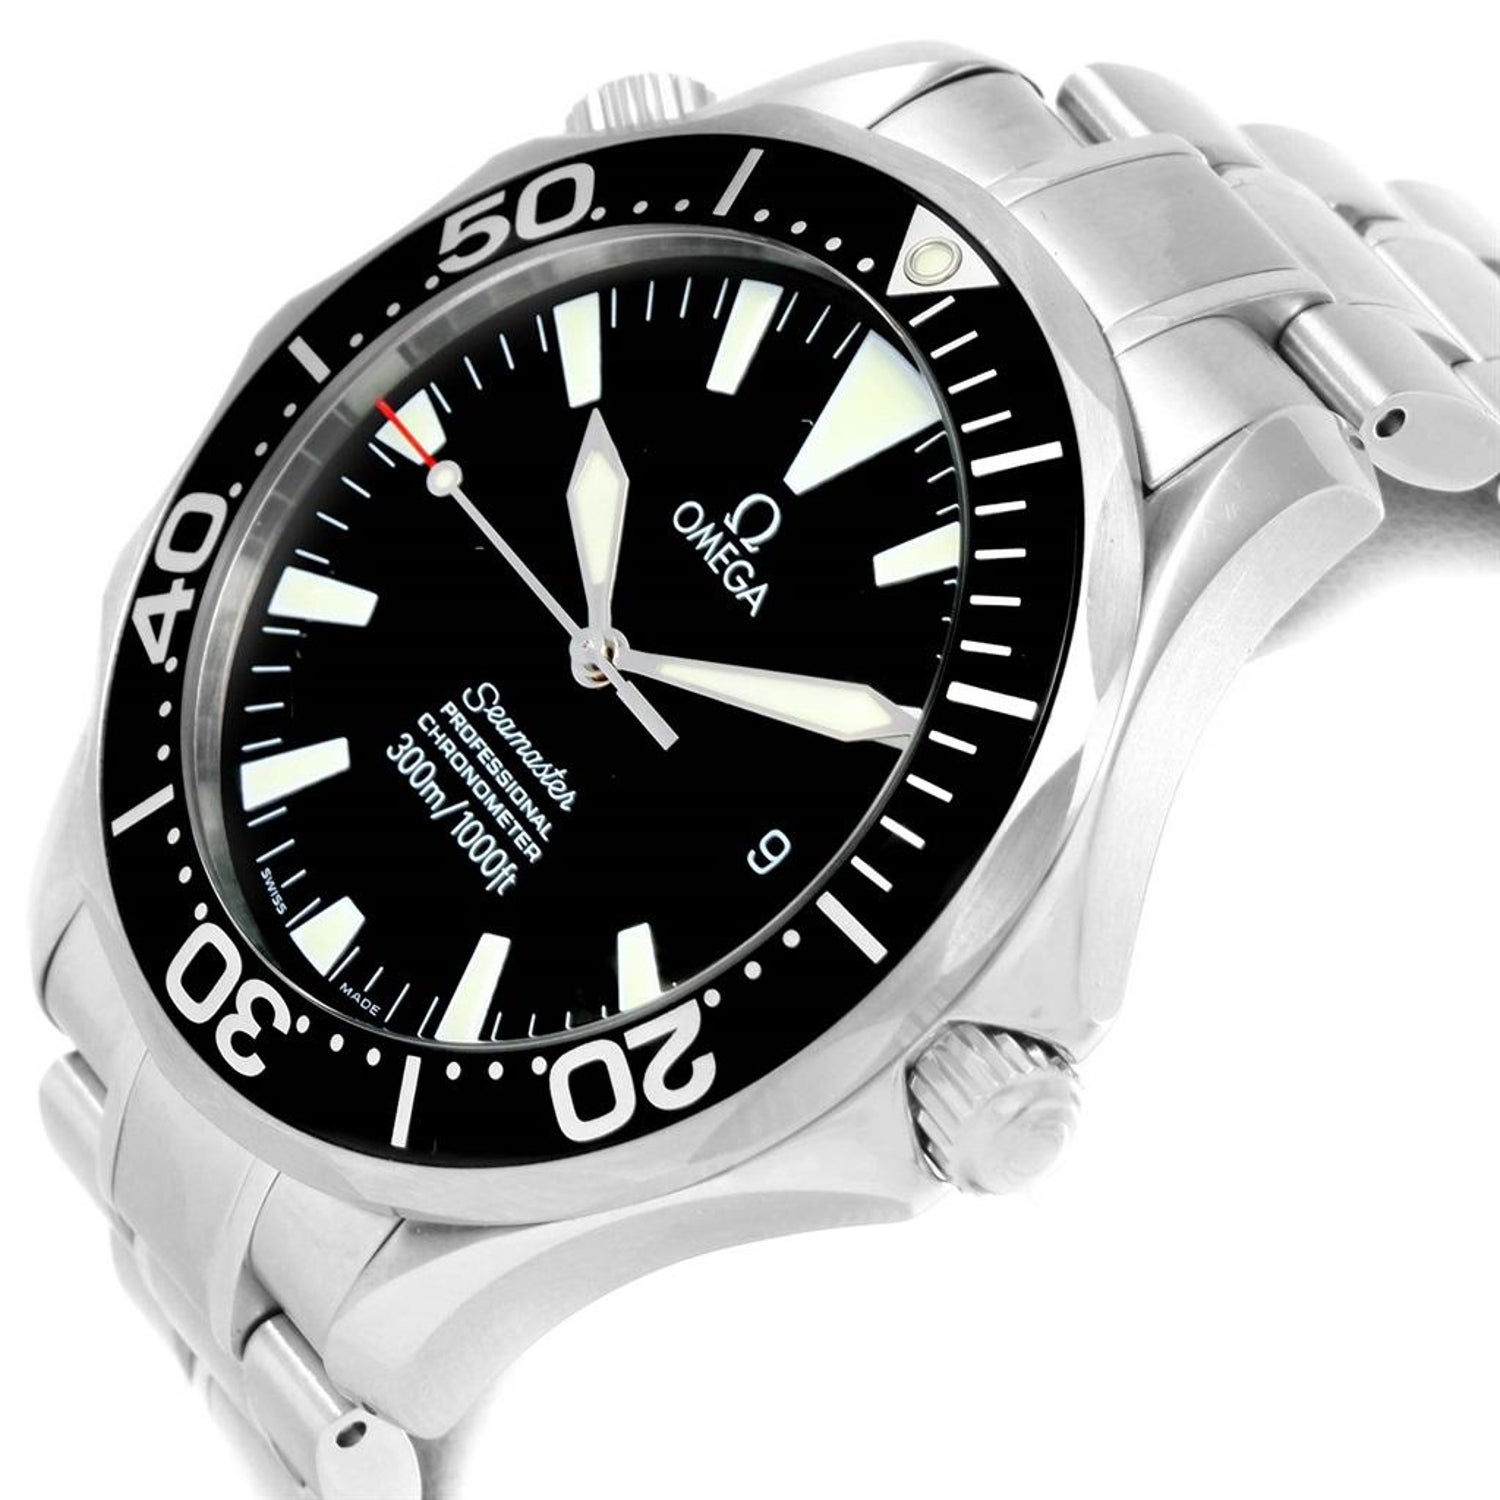 addd7c3b158 Omega Seamaster Professional Black Wave Dial Men s Watch 2254.50.00 For  Sale at 1stdibs